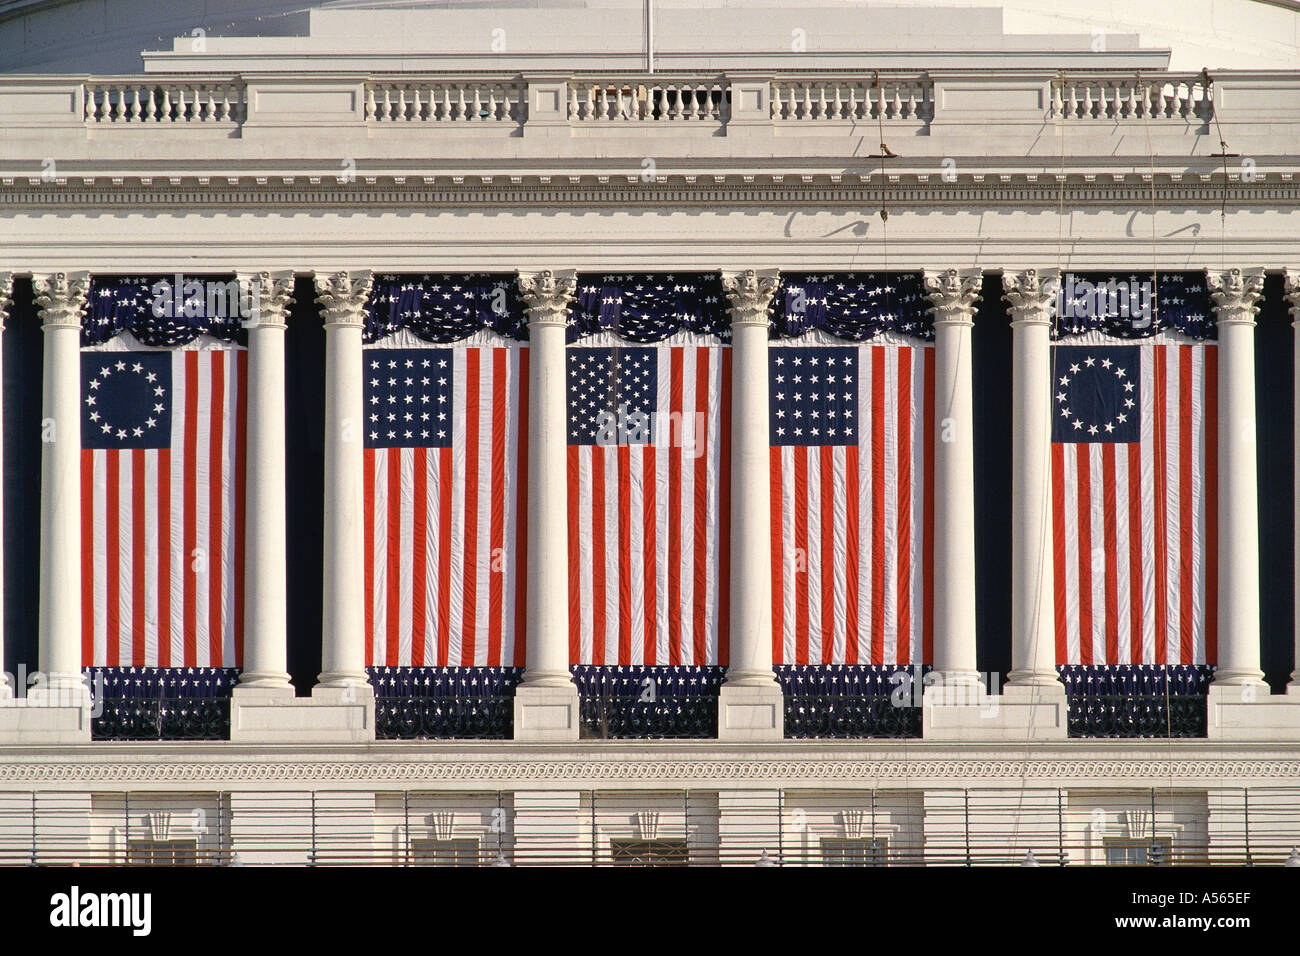 US Capitol Building with American flags draped between columns - Stock Image